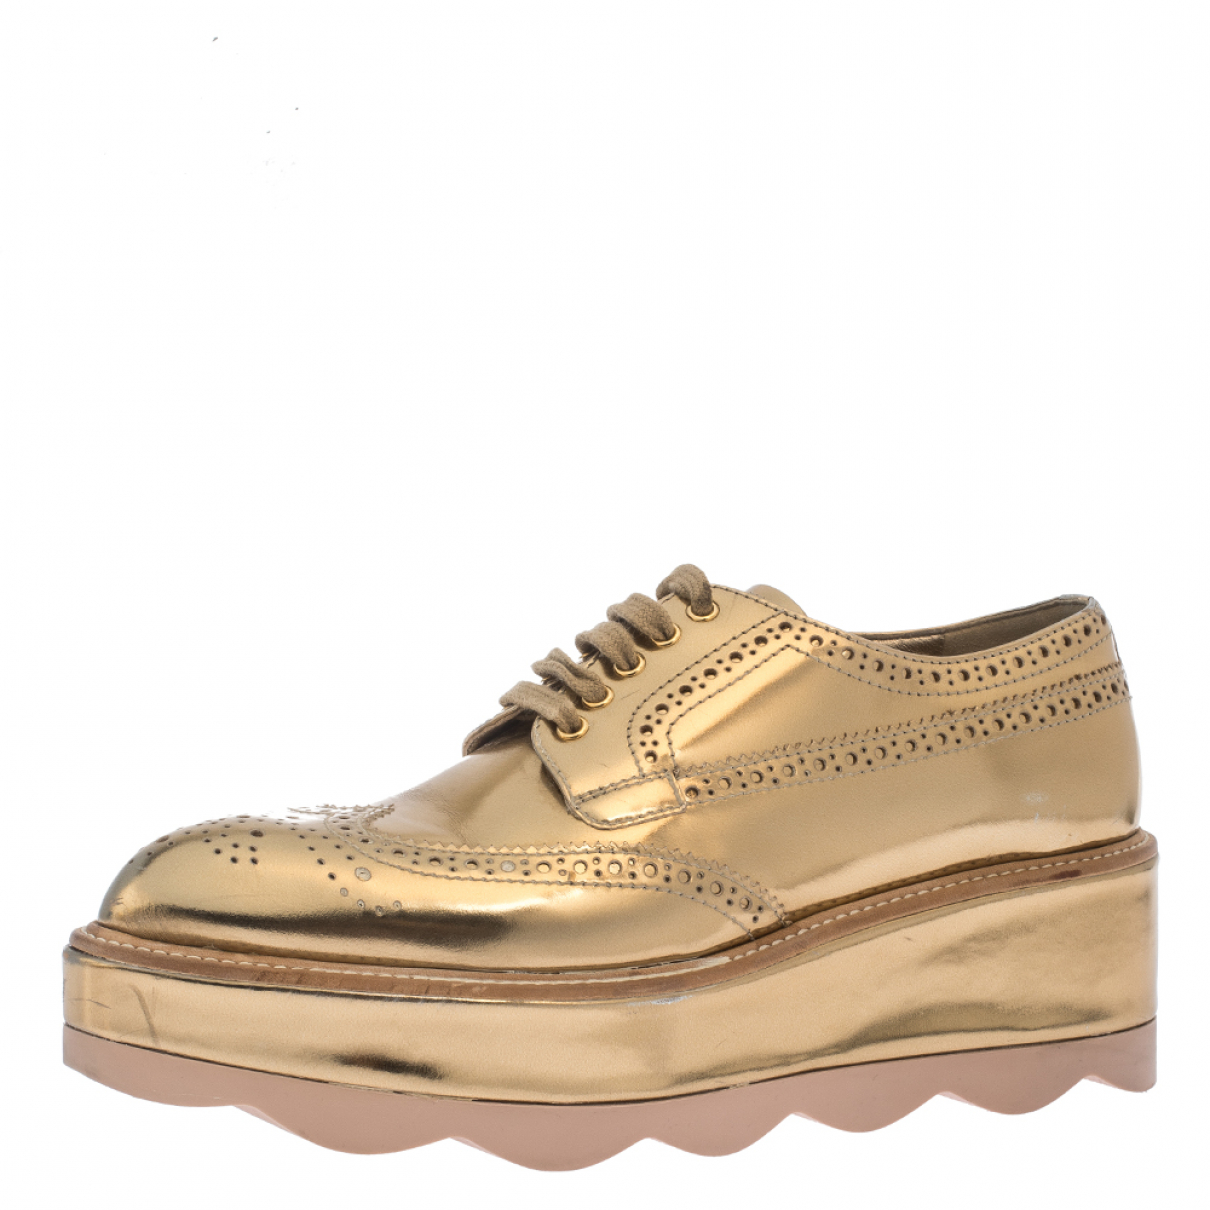 Prada \N Gold Leather Flats for Women 7 US